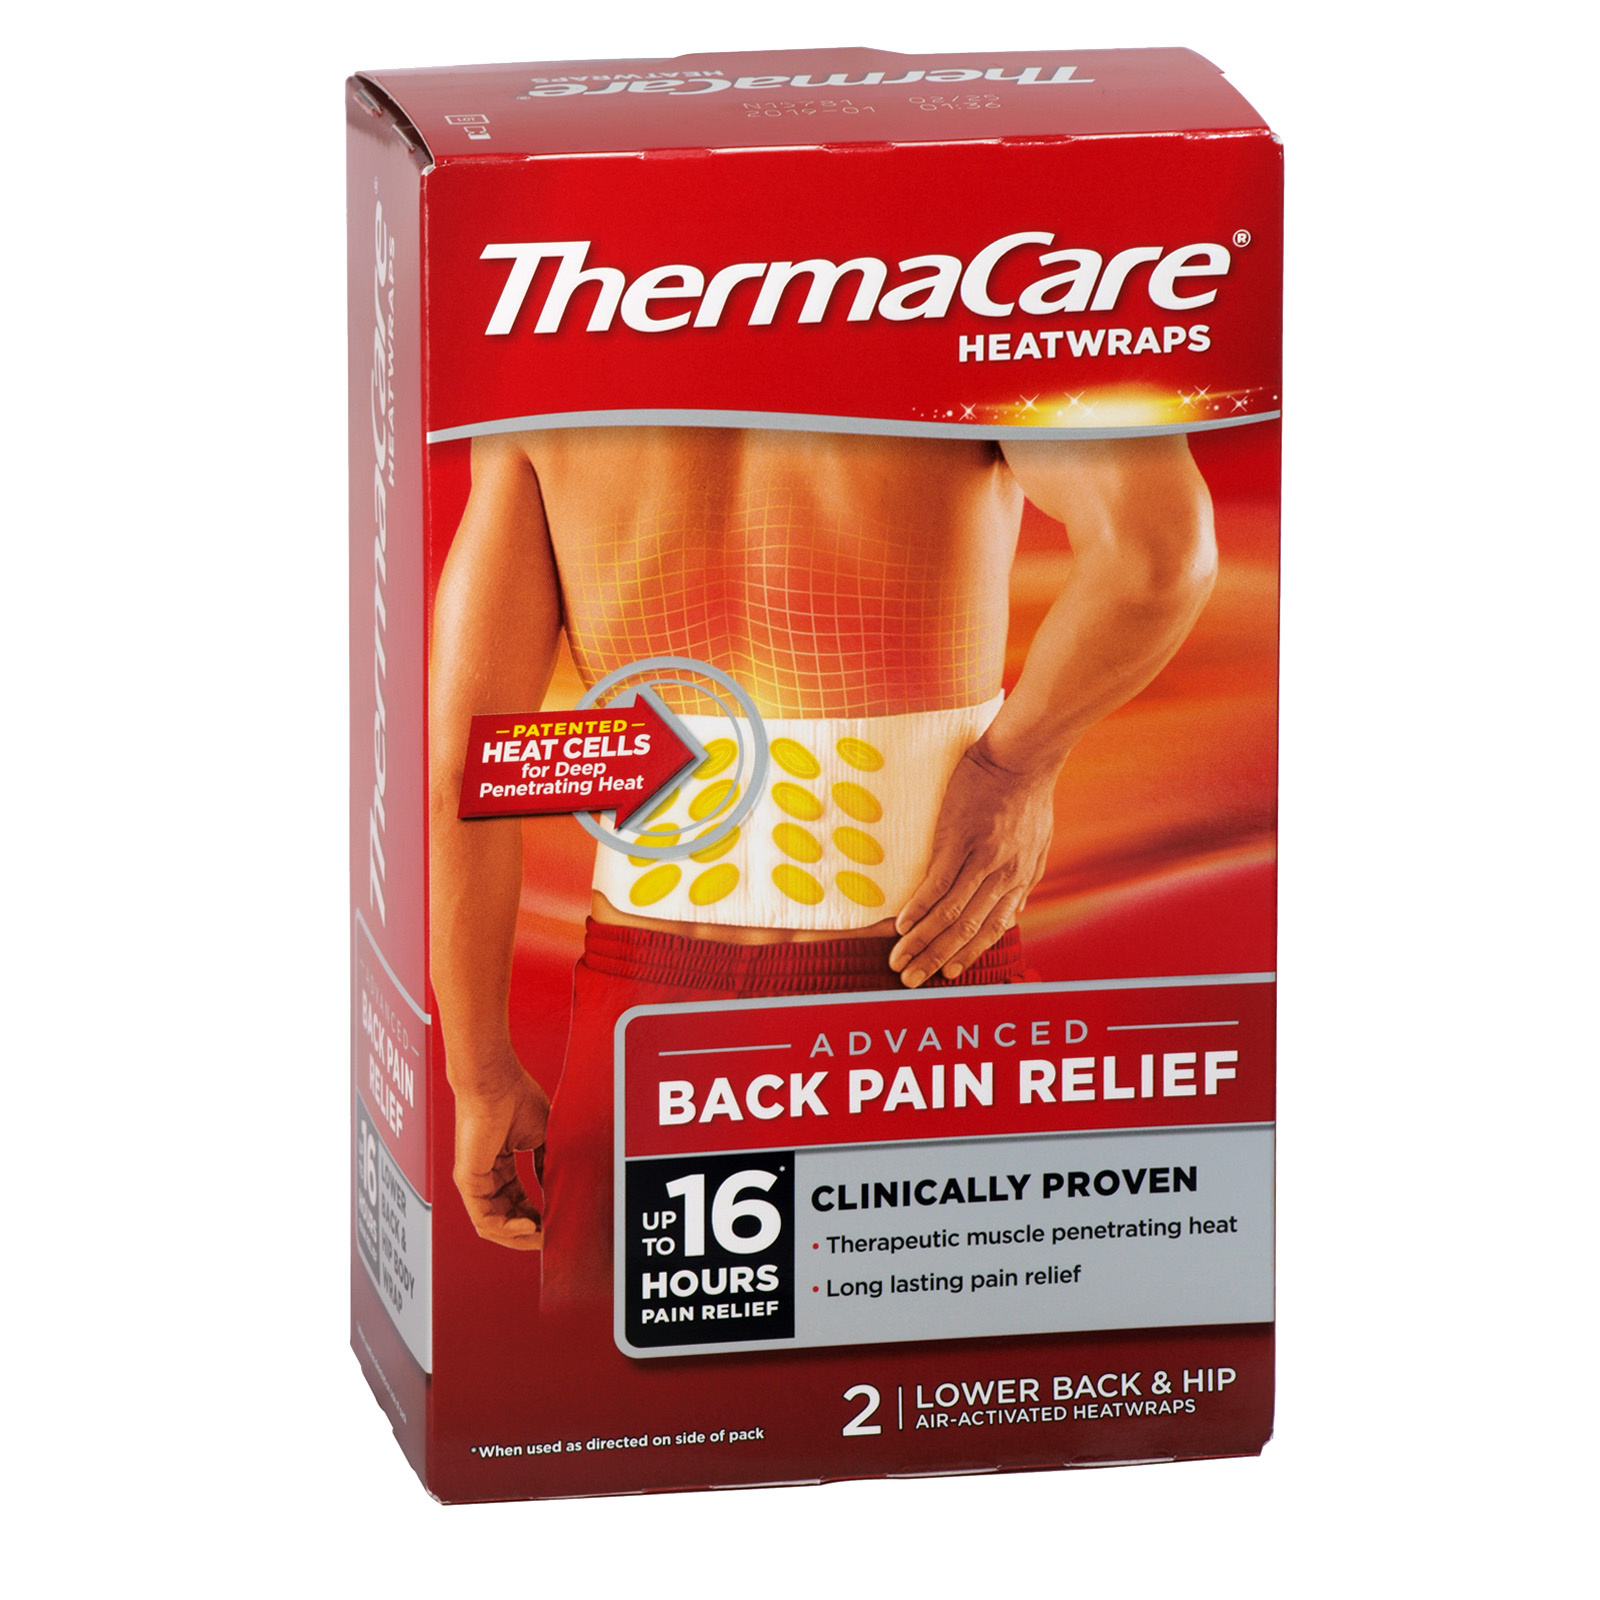 THERMACARE HEAT WRAPS 2PK LOWER BACK AND HIP RSP £6.12